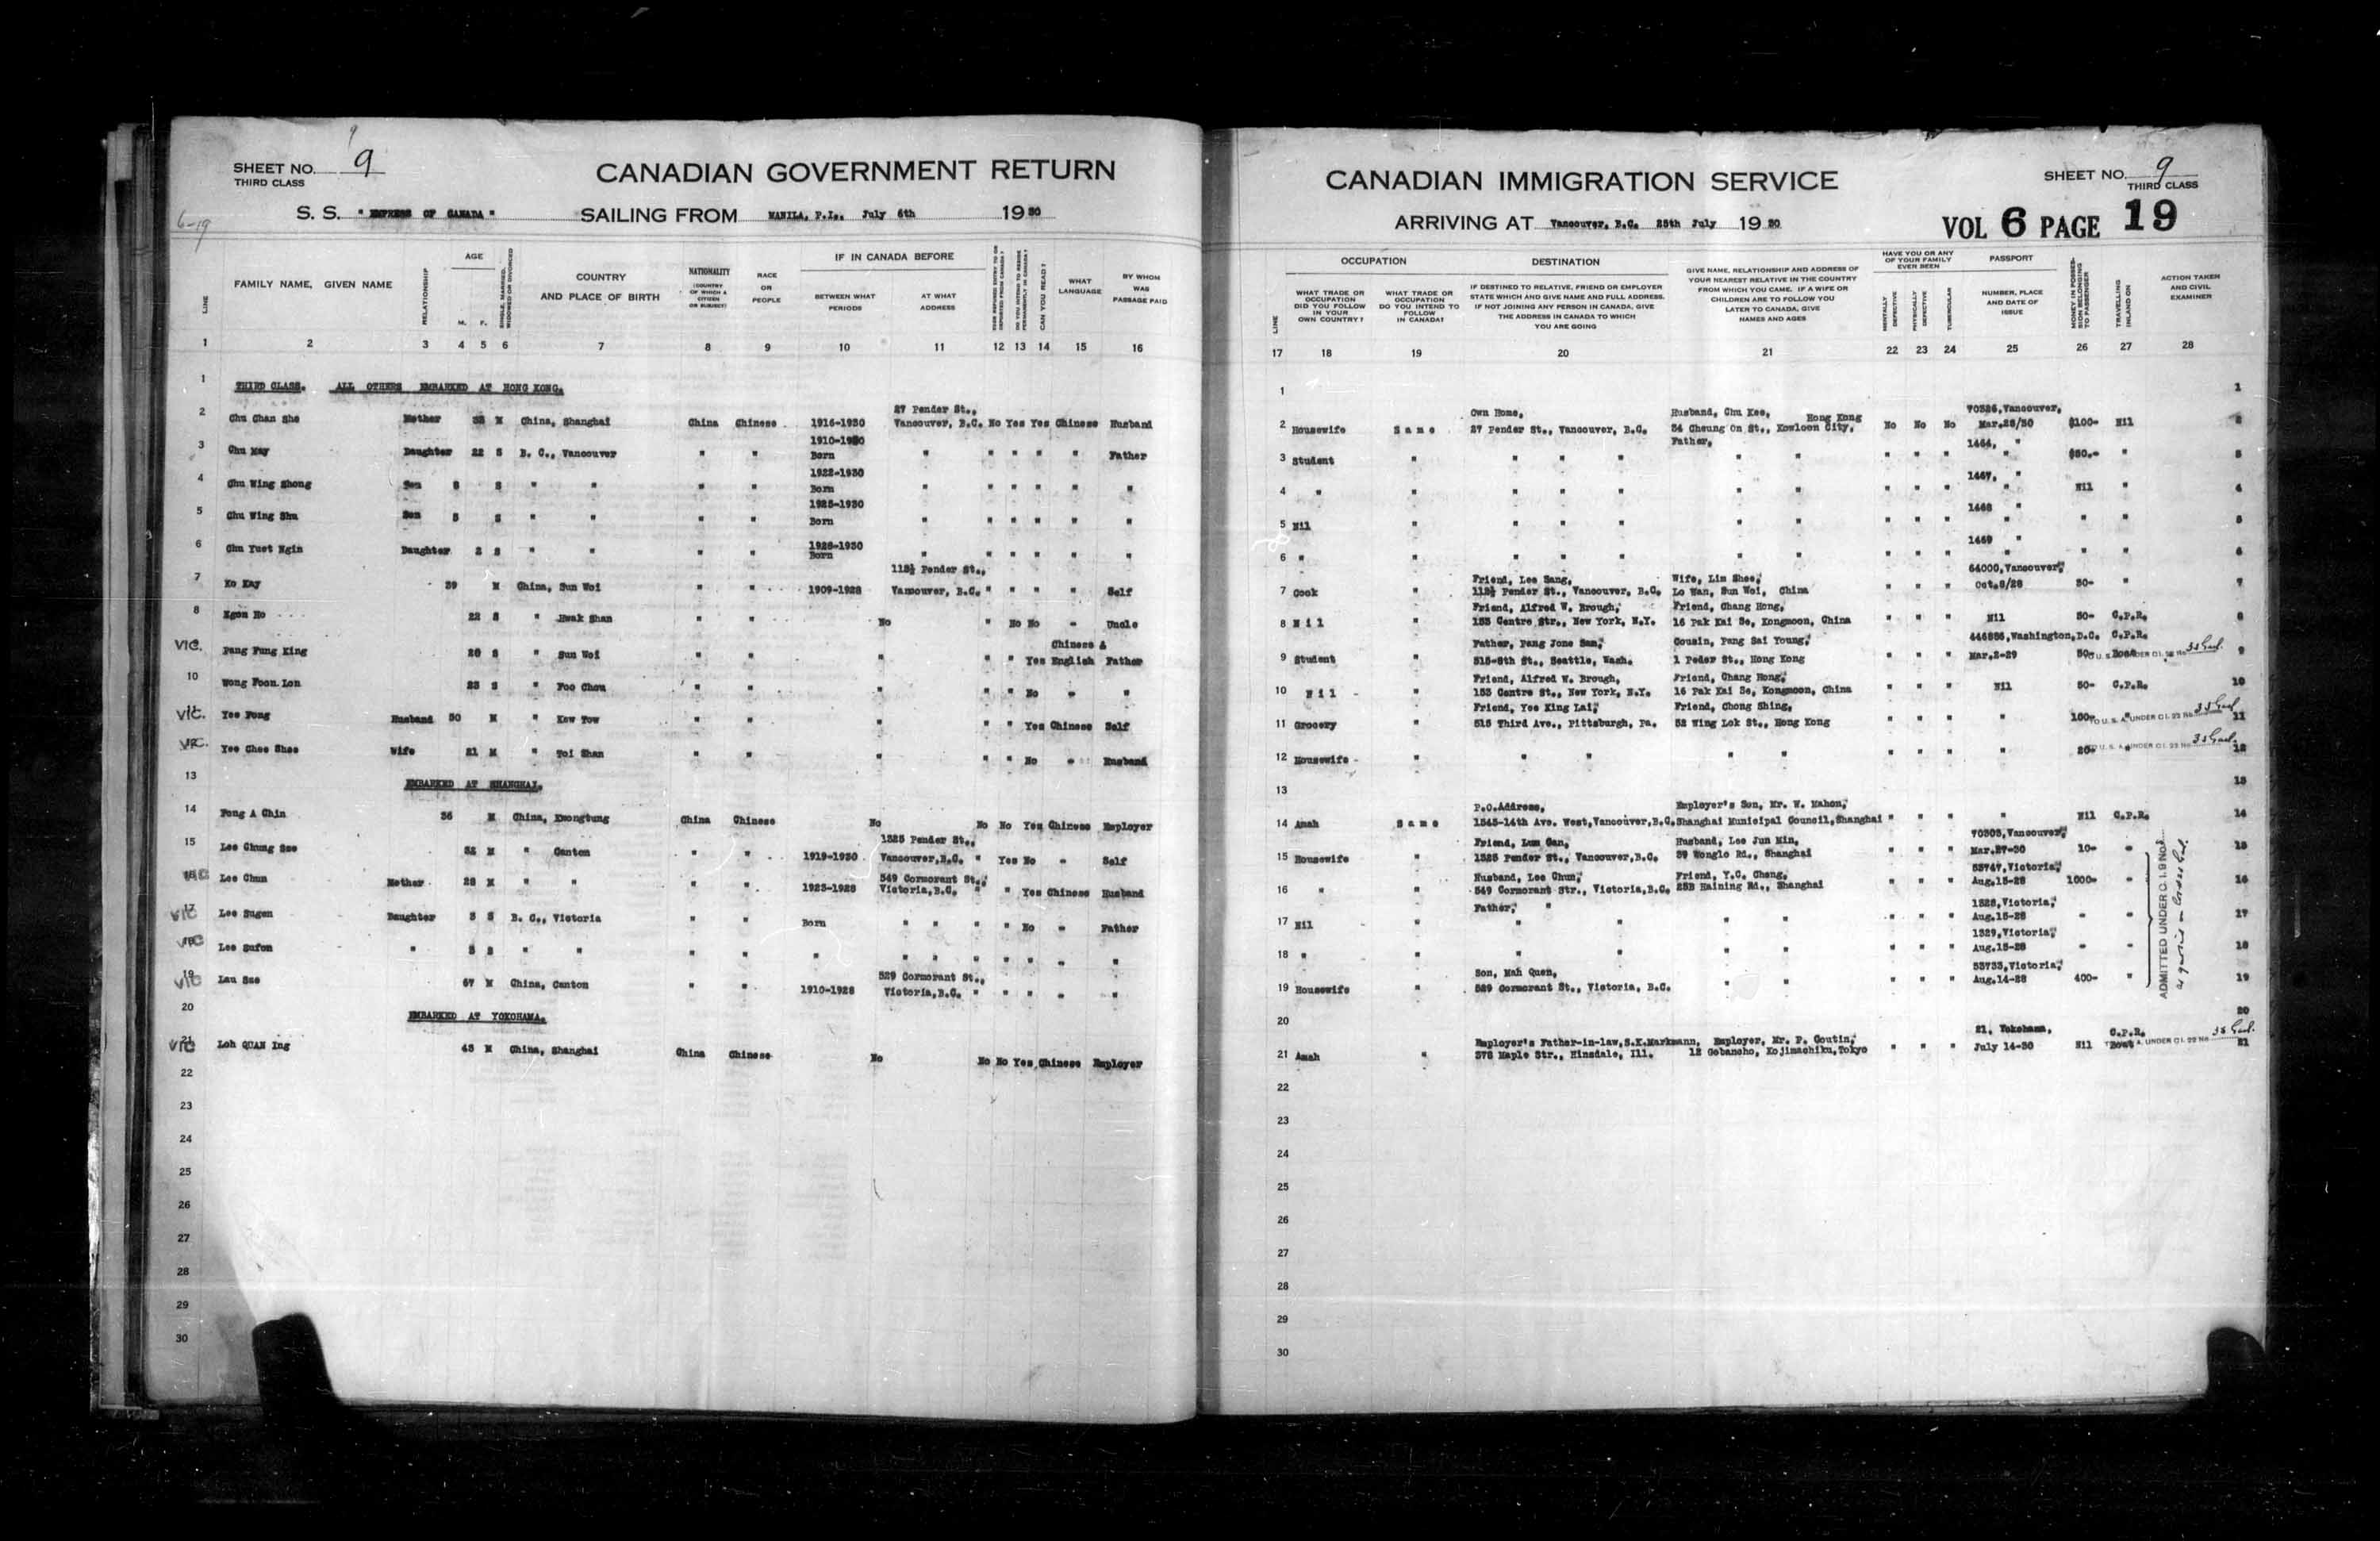 Title: Passenger Lists: Vancouver and Victoria (1925-1935) - Mikan Number: 161347 - Microform: t-14897